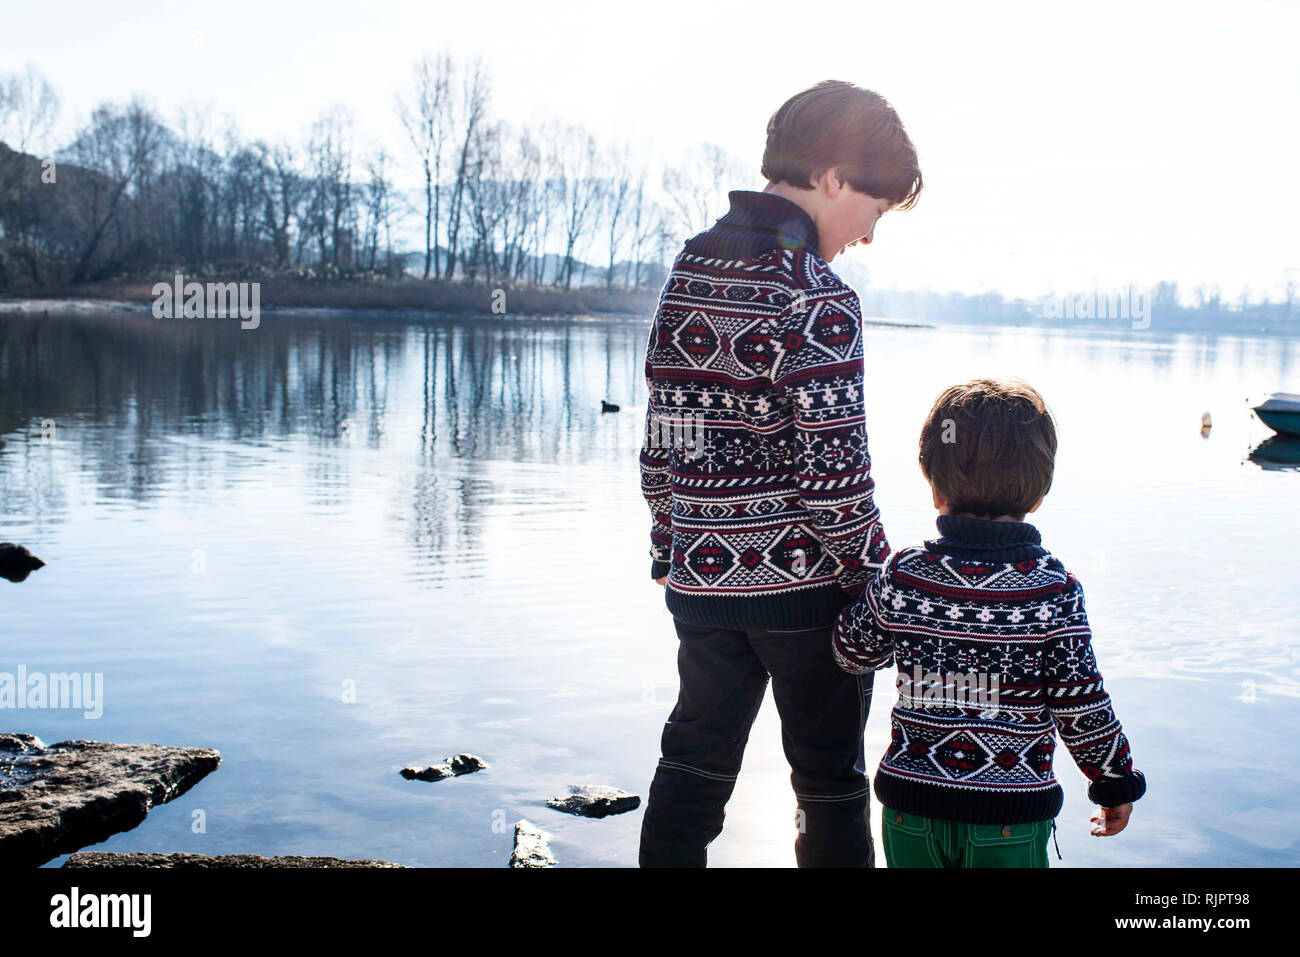 Boy and toddler brother in matching sweaters standing on lakeside, Lake Como, Lecco, Lombardy, Italy - Stock Image